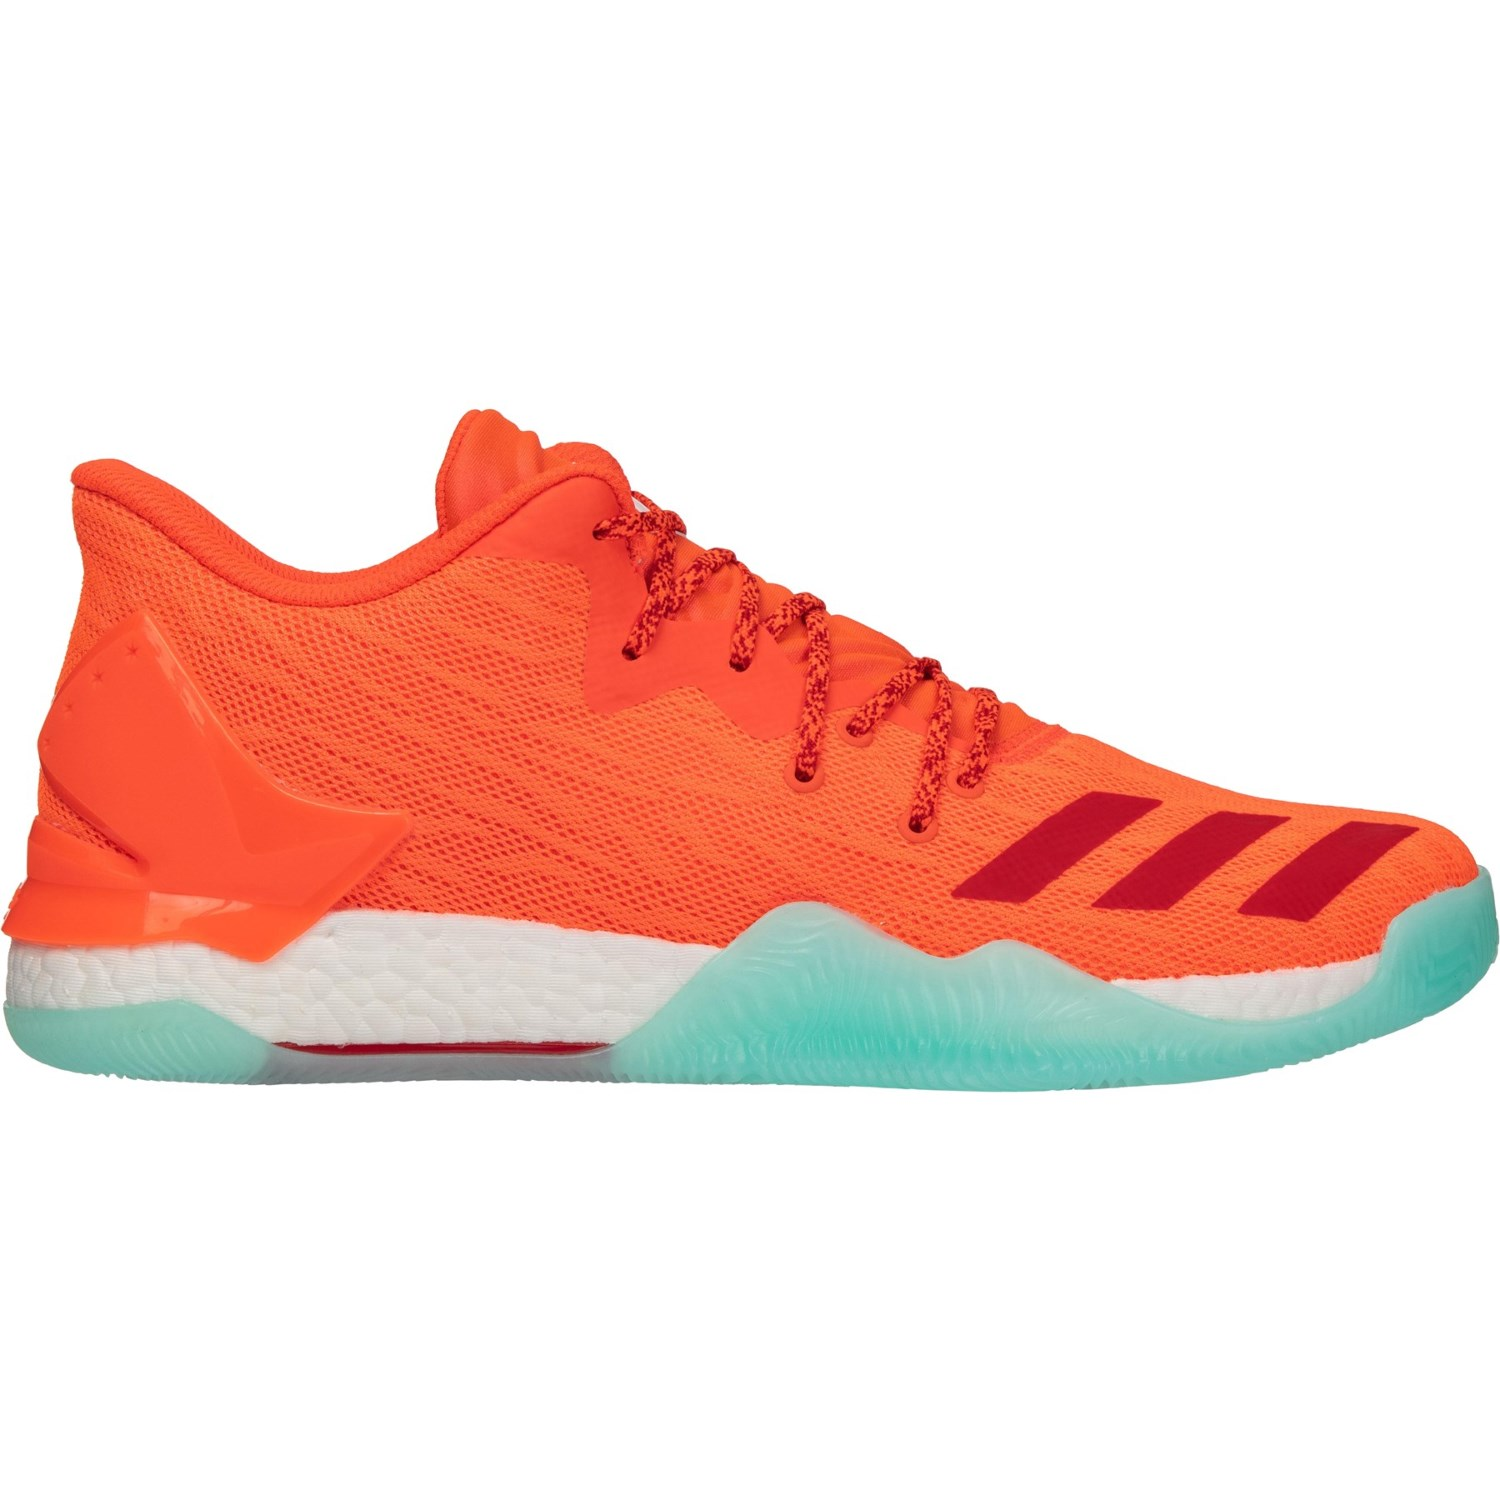 78cb71e79f71 adidas D Rose 7 Low Basketball Shoes (For Men) - Save 48%